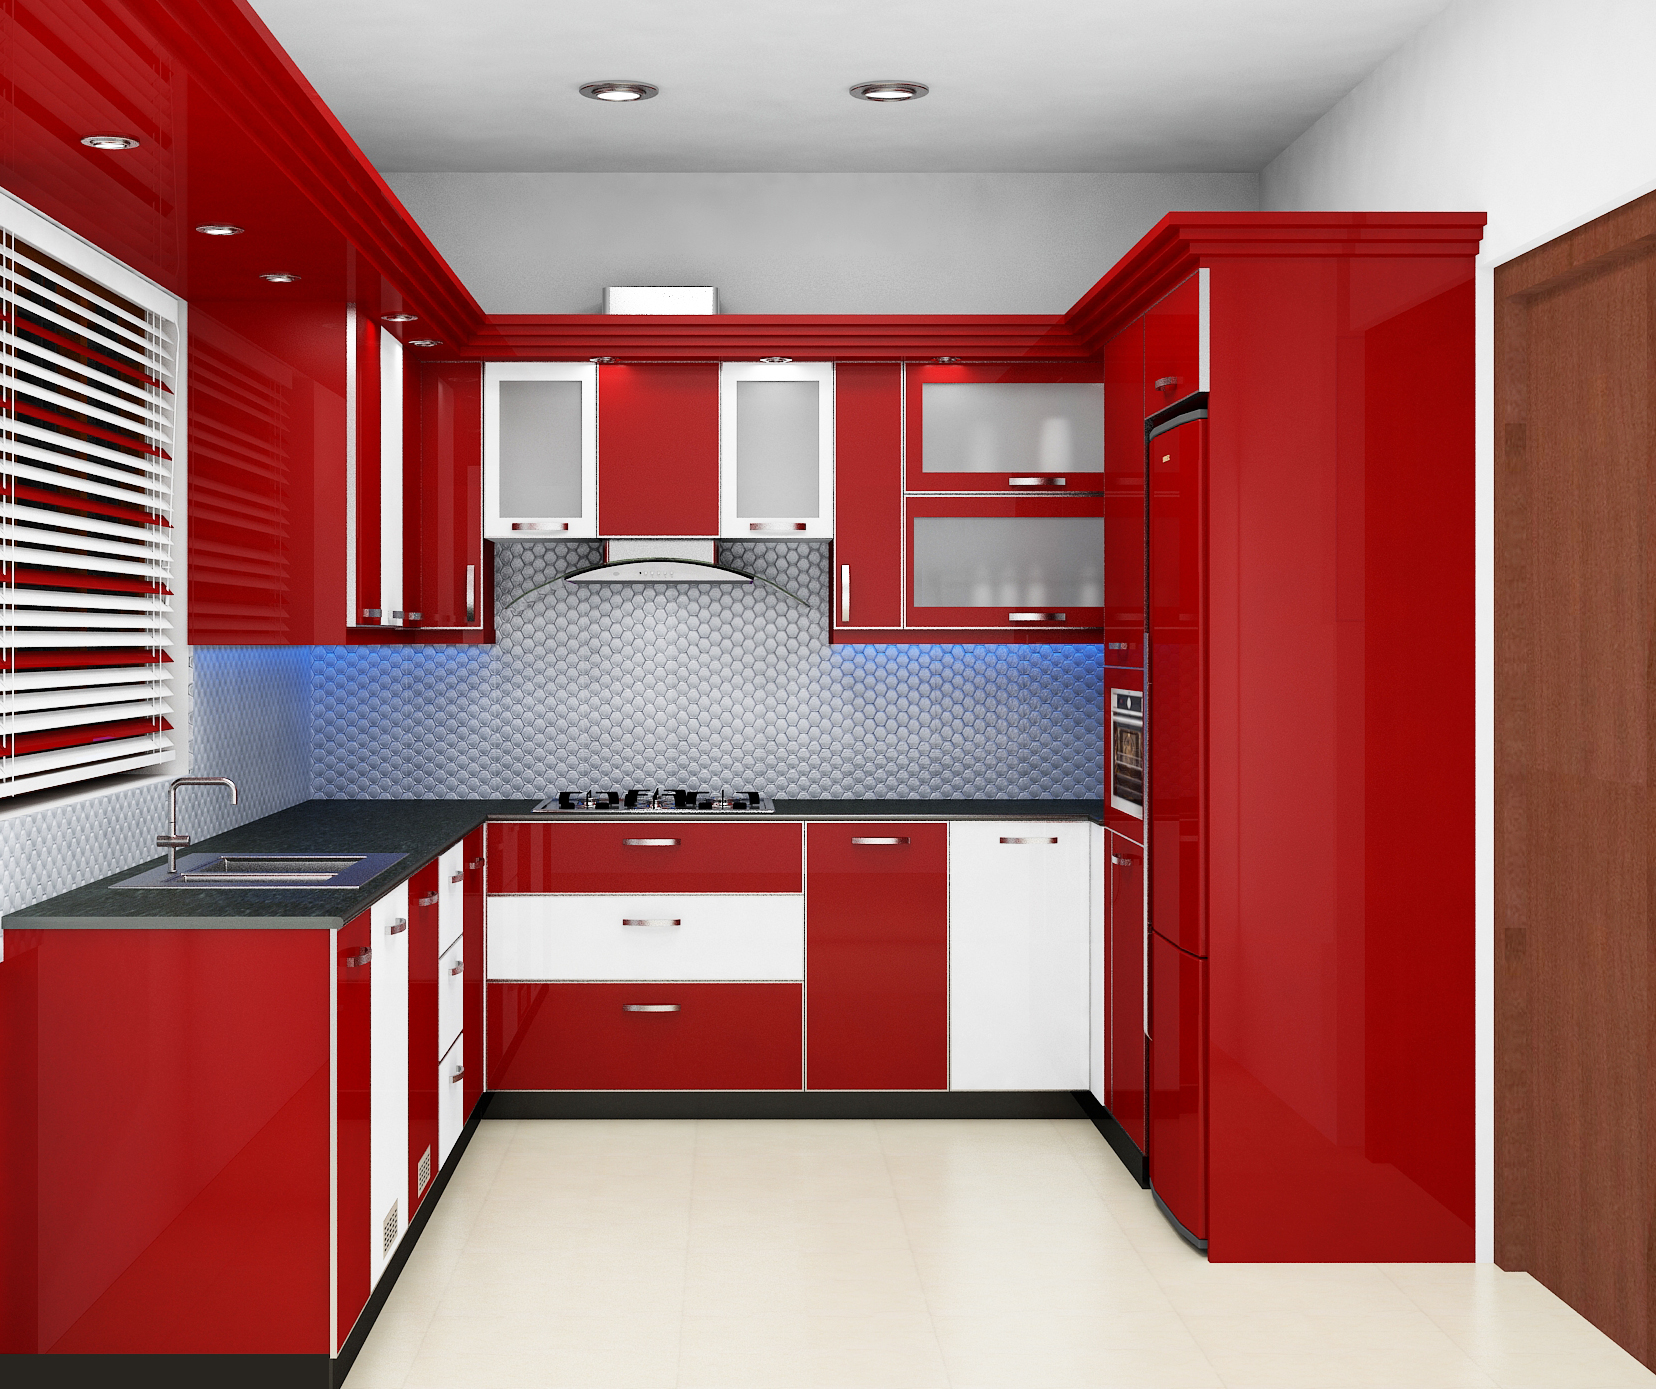 Exemplary and amazing modular kitchen home interior design House model interior design